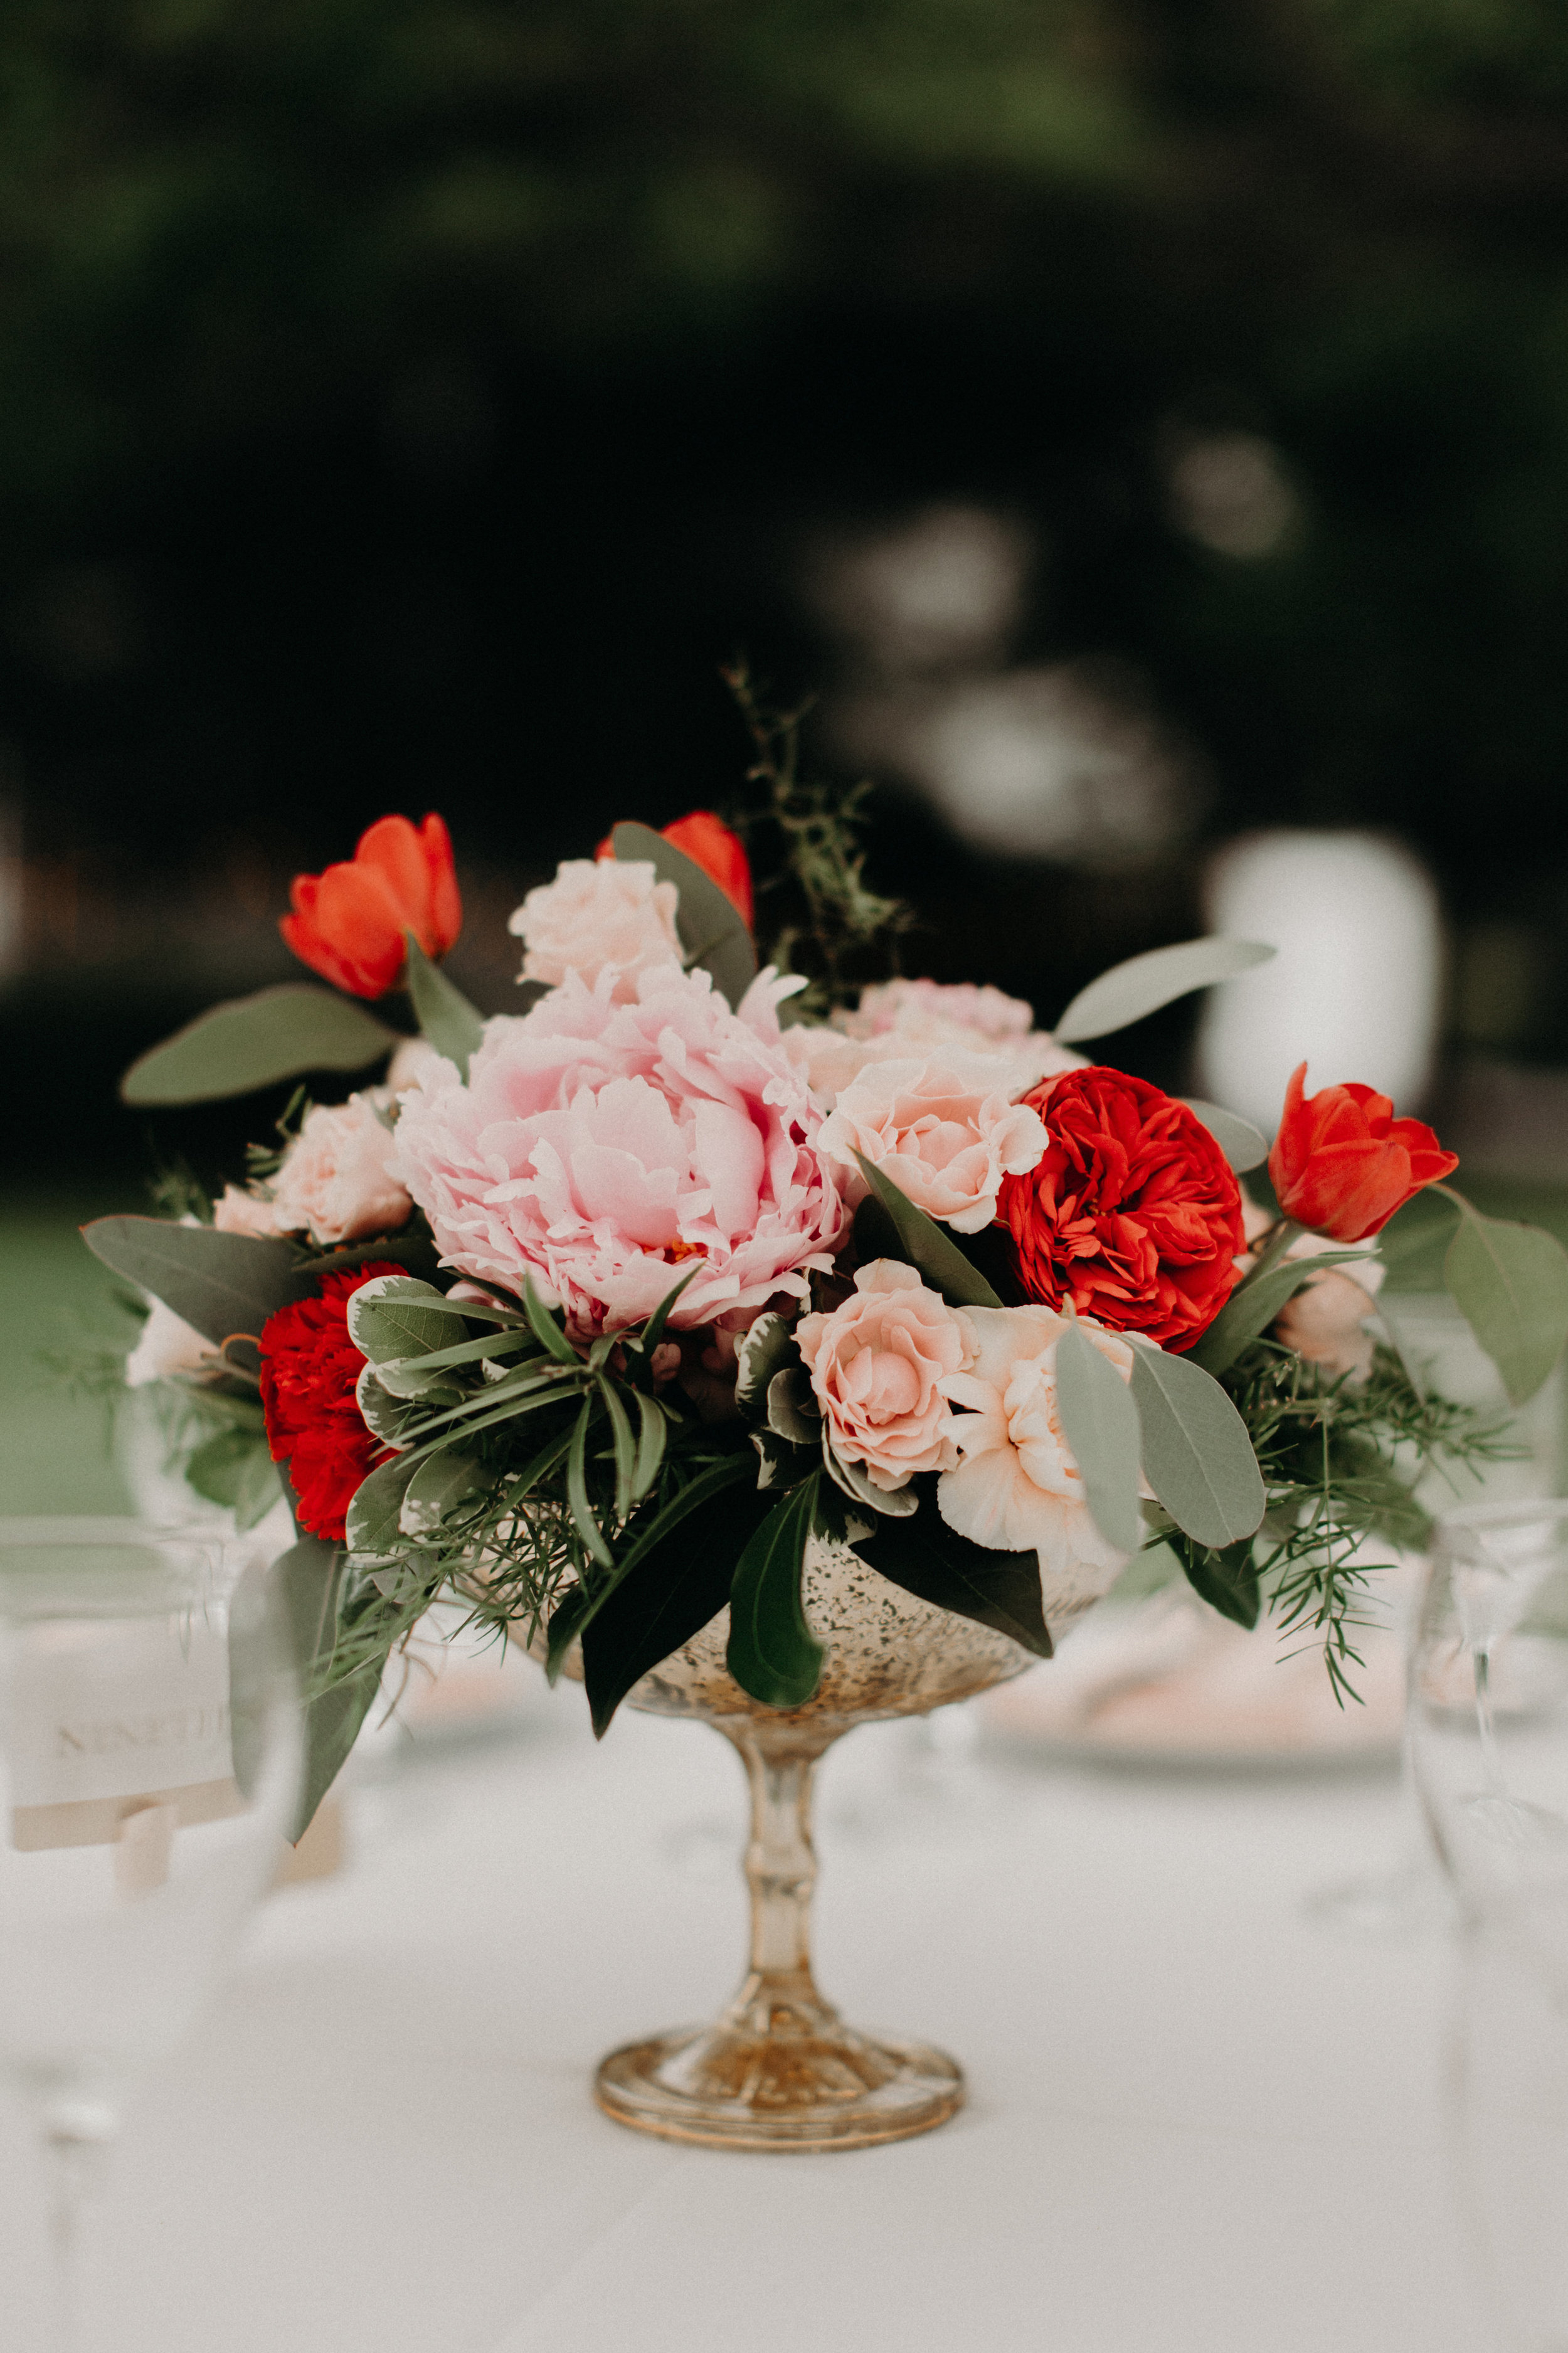 Wedding Centerpiece in gold compote by Lark Floral